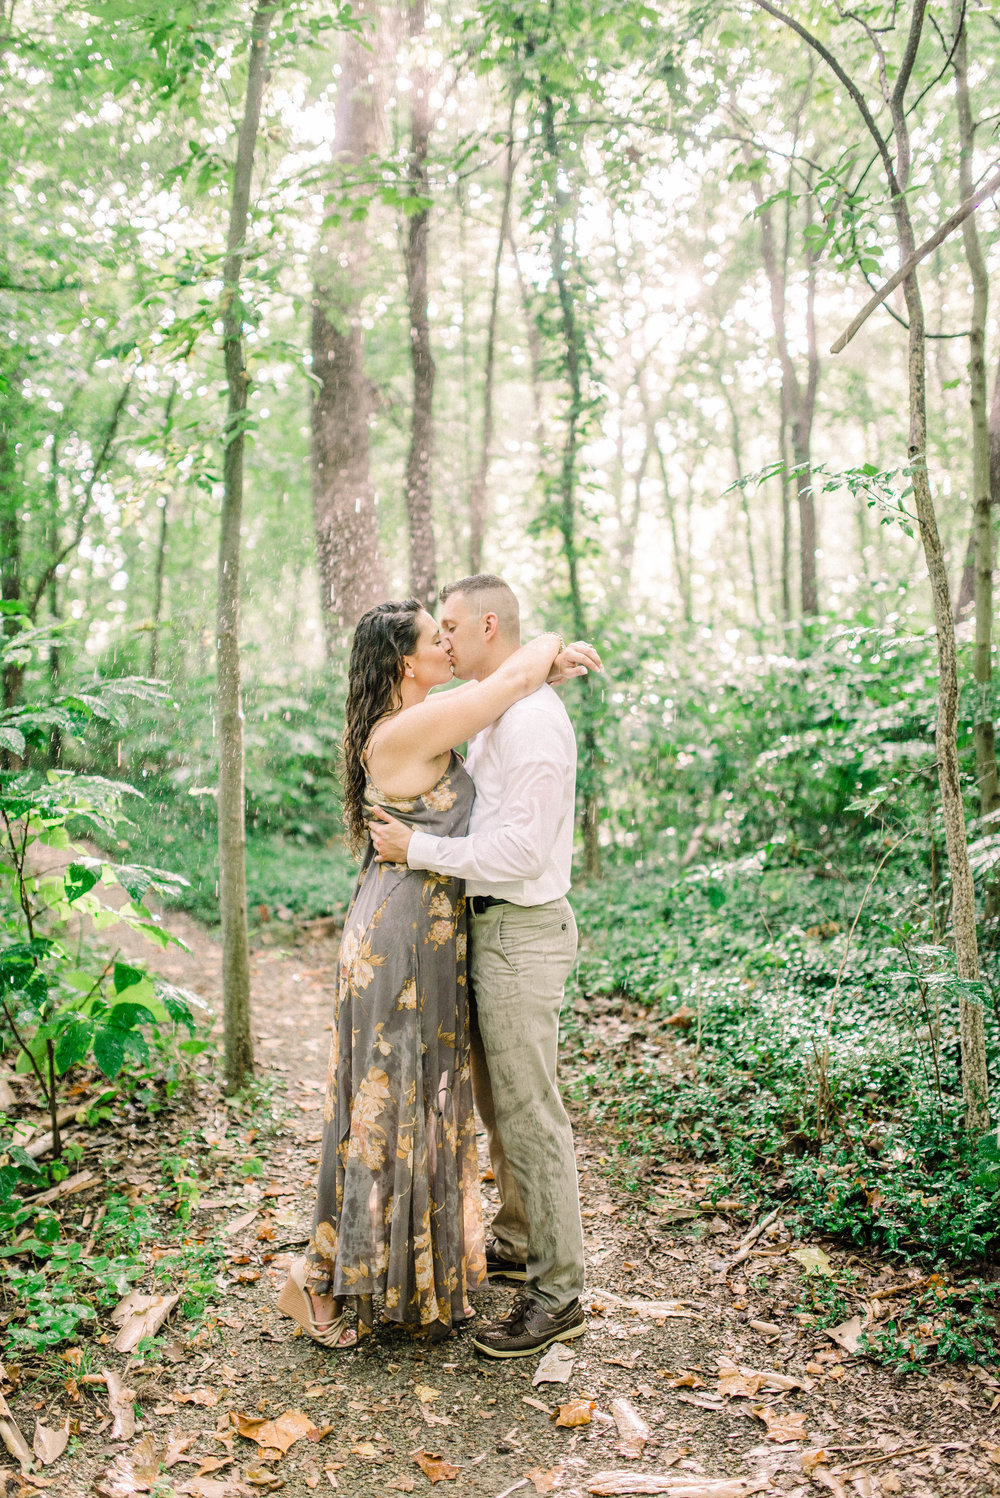 Kaitie + Ryan | A Romantic Engagement with Rain Forest Vibes in Carmel, IN | Indianapolis Elopement & Destination Wedding Photographers